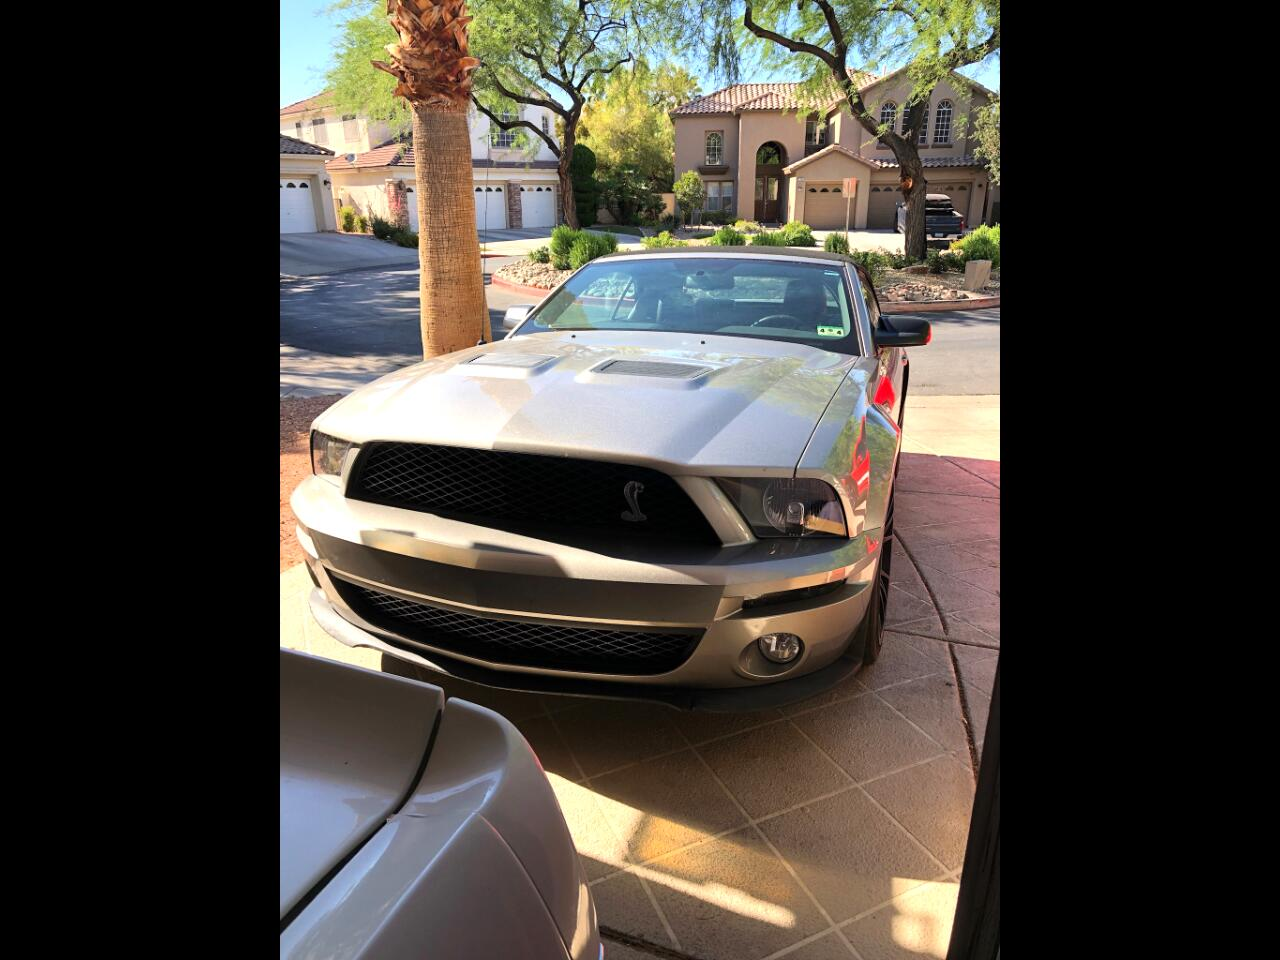 Ford Mustang 2dr Conv Shelby GT500 2009